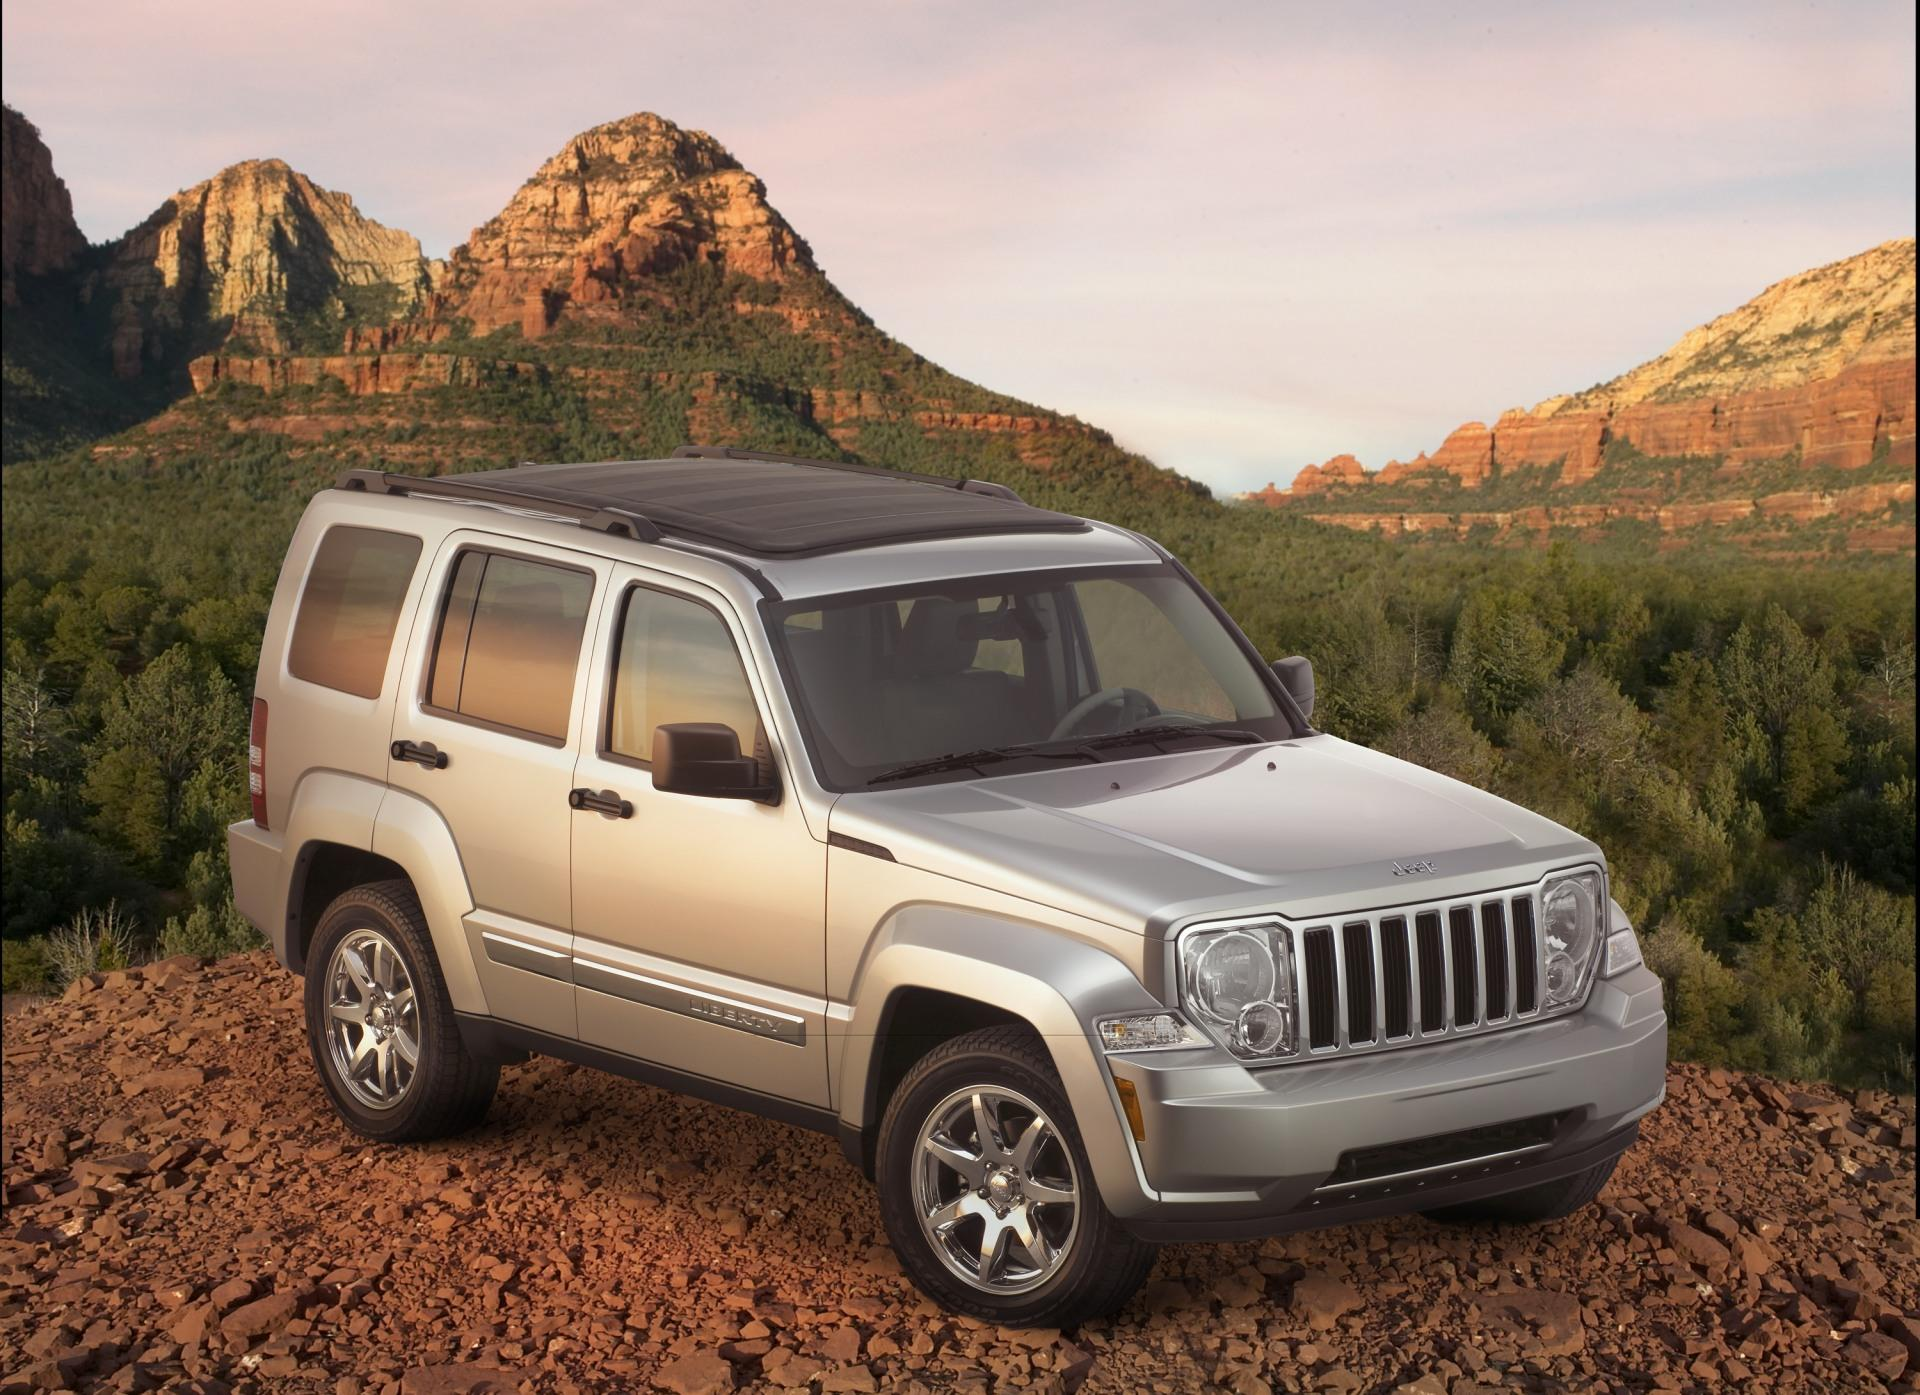 2009 Jeep Liberty News And Information Conceptcarz Com